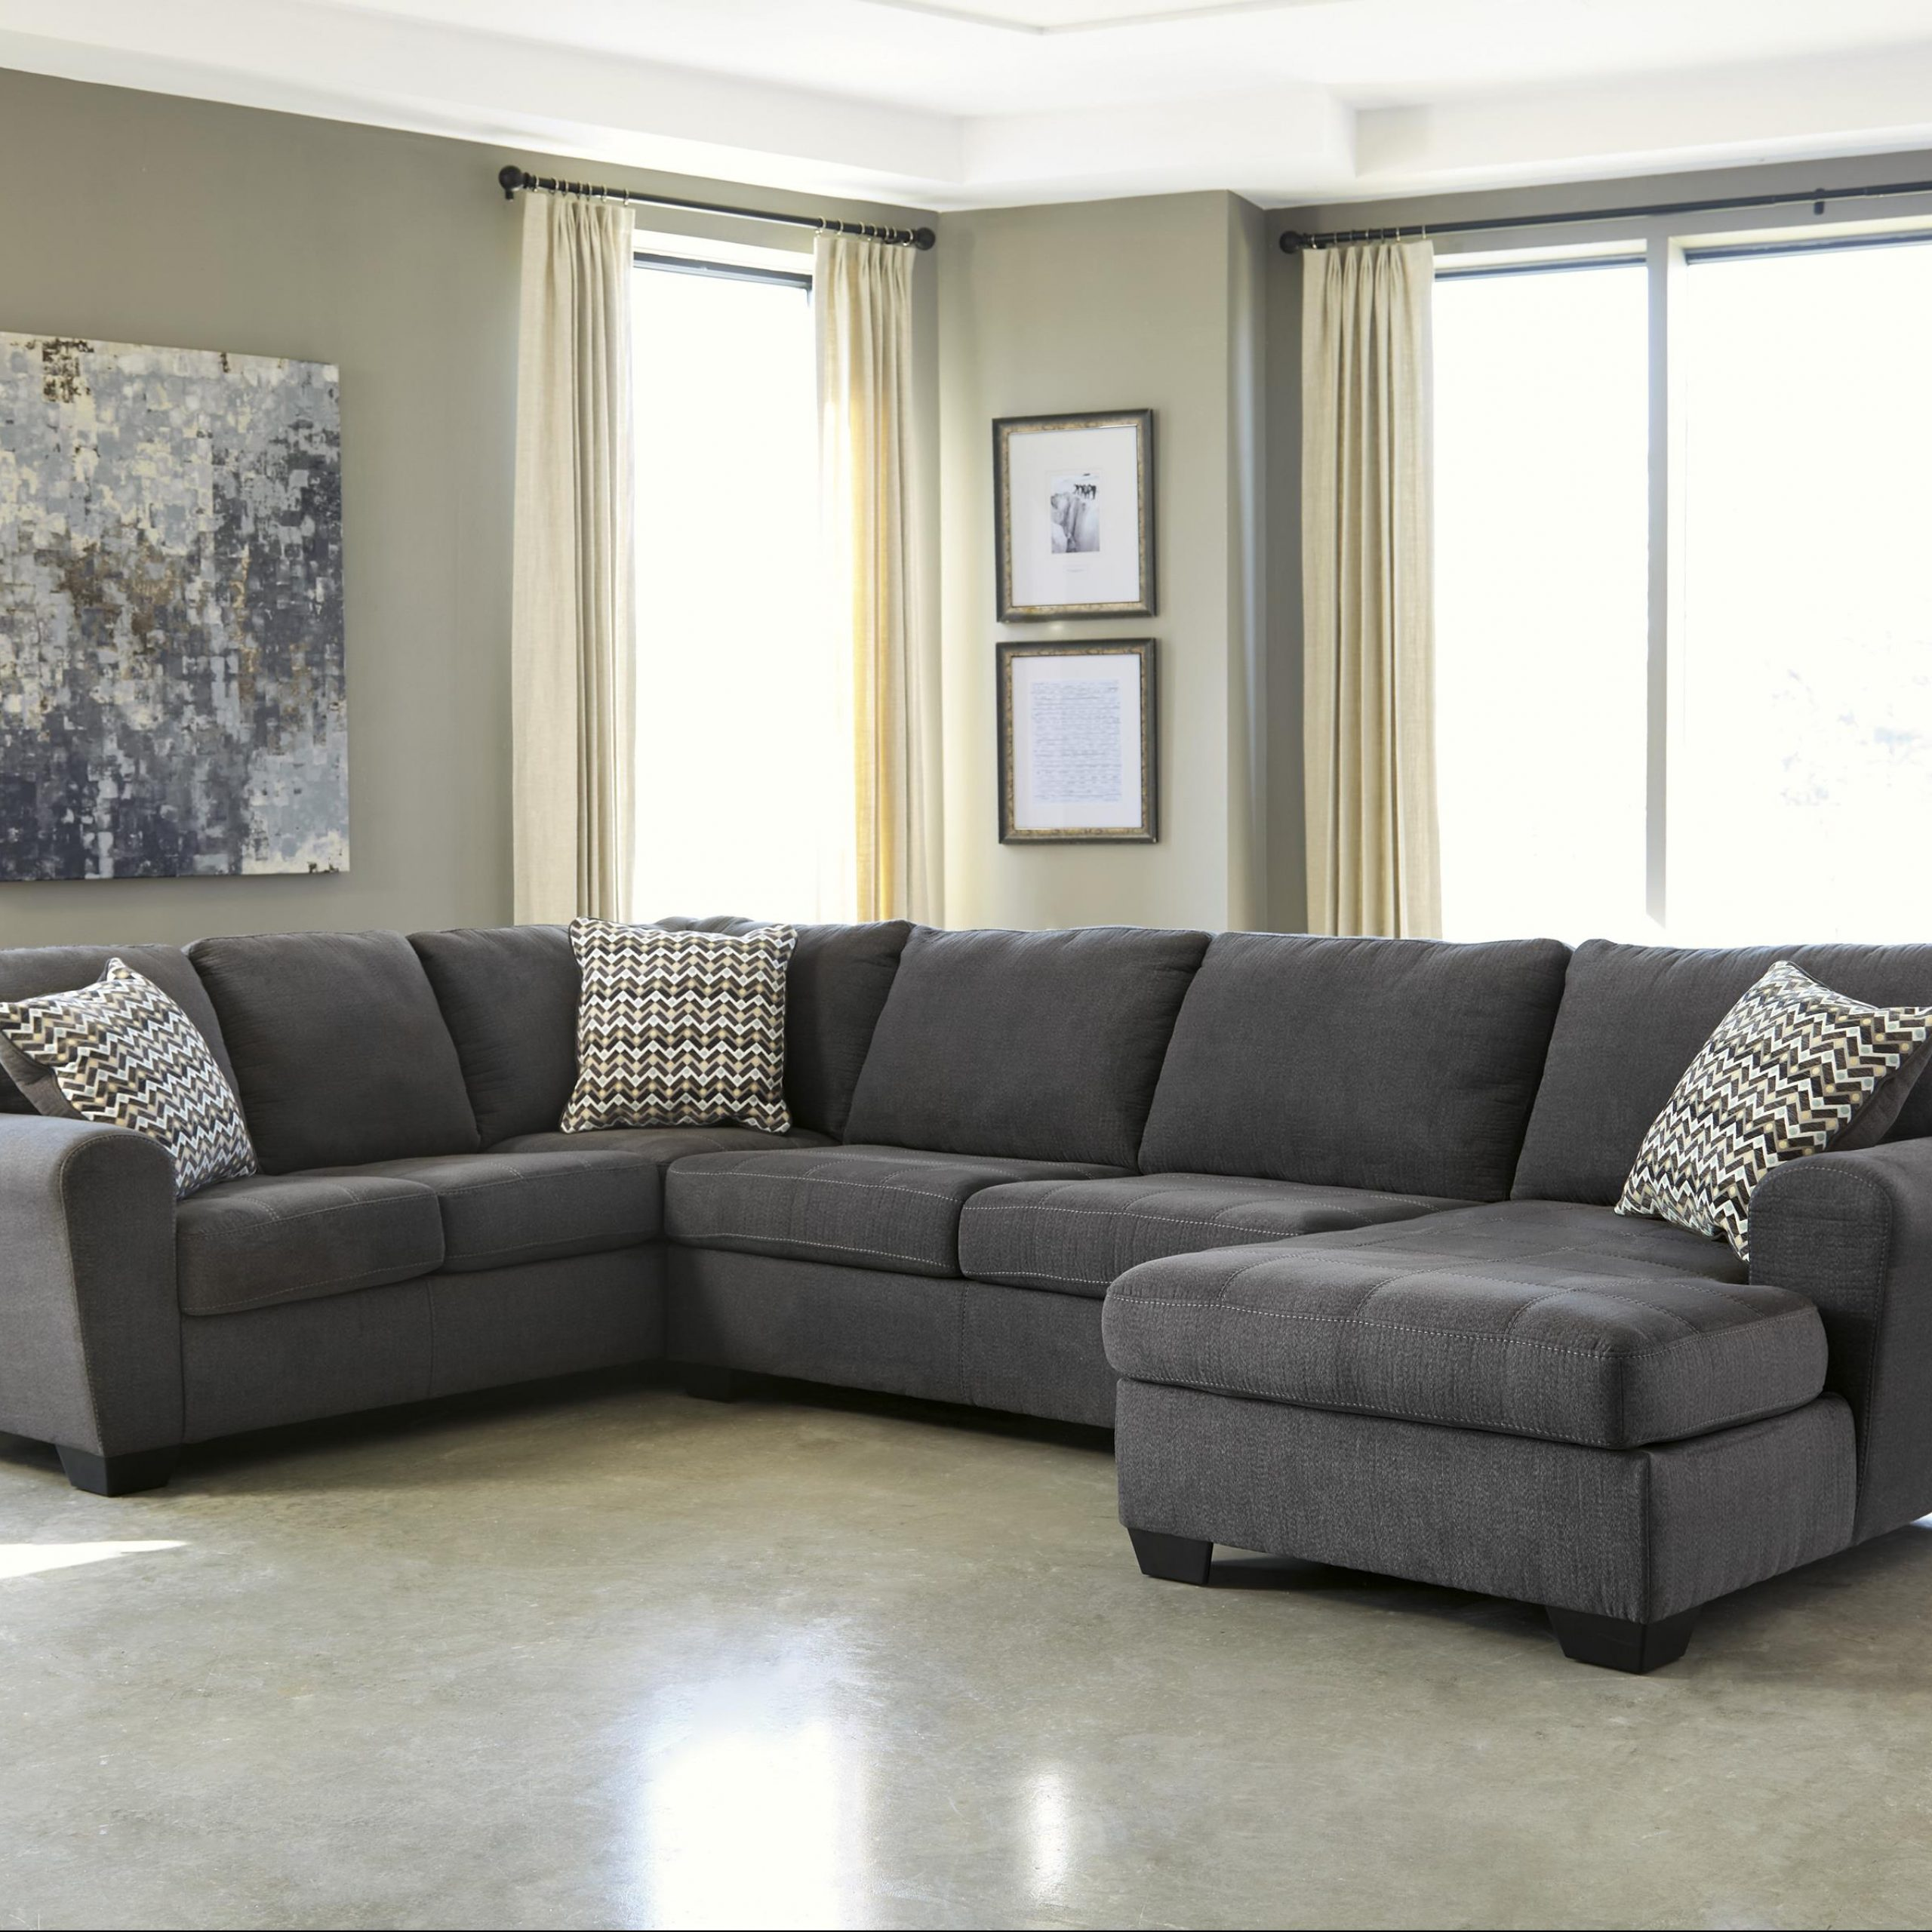 Contemporary 3 Piece Sectional With Left Chaise With Regard To Current 4Pc Crowningshield Contemporary Chaise Sectional Sofas (View 19 of 25)